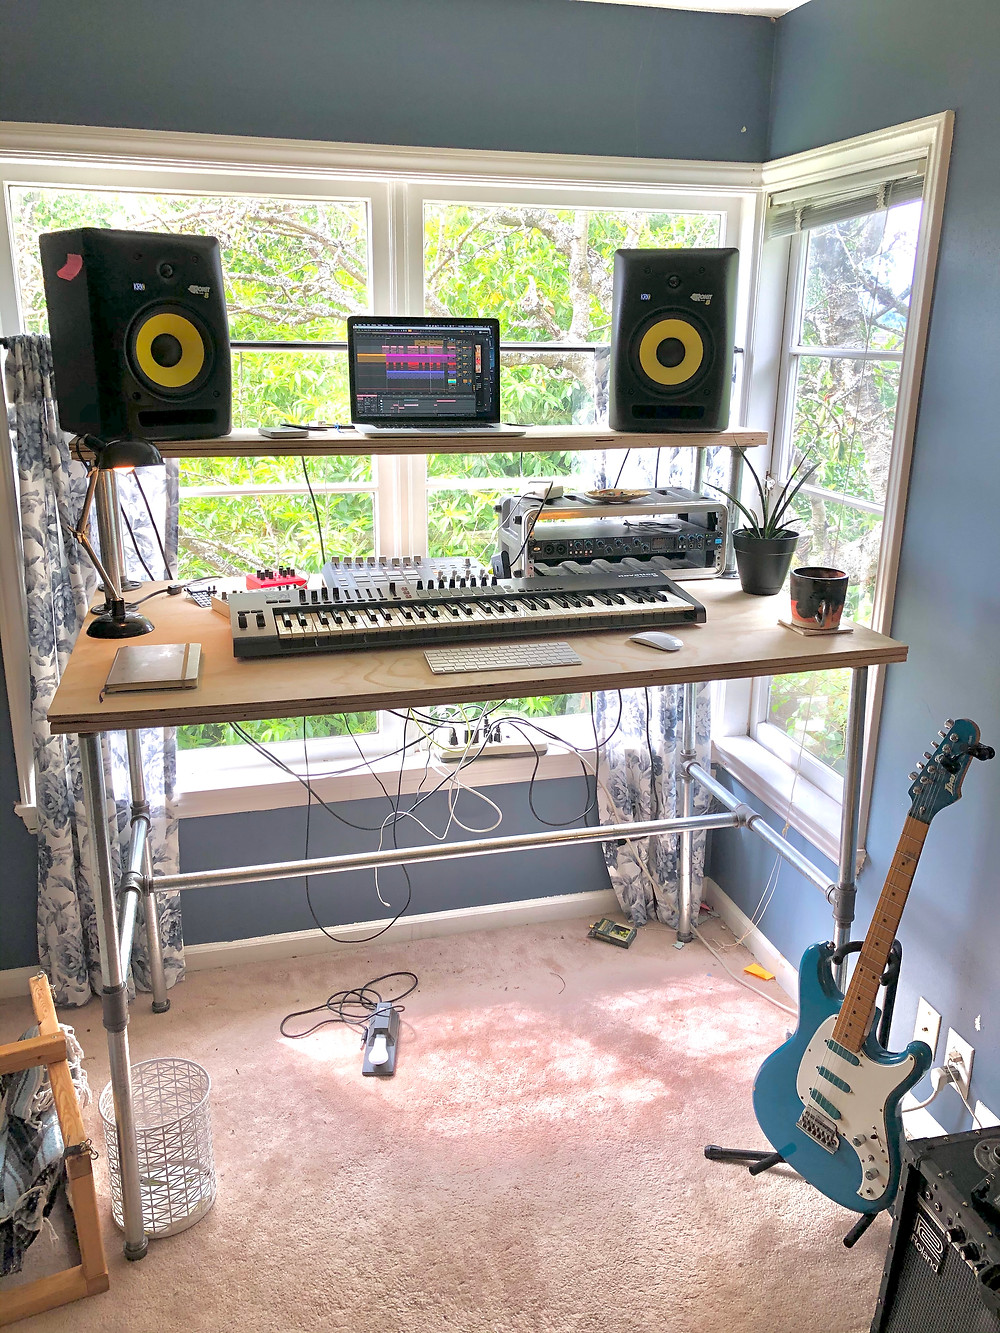 Author's standing desk with computer and music equipment.